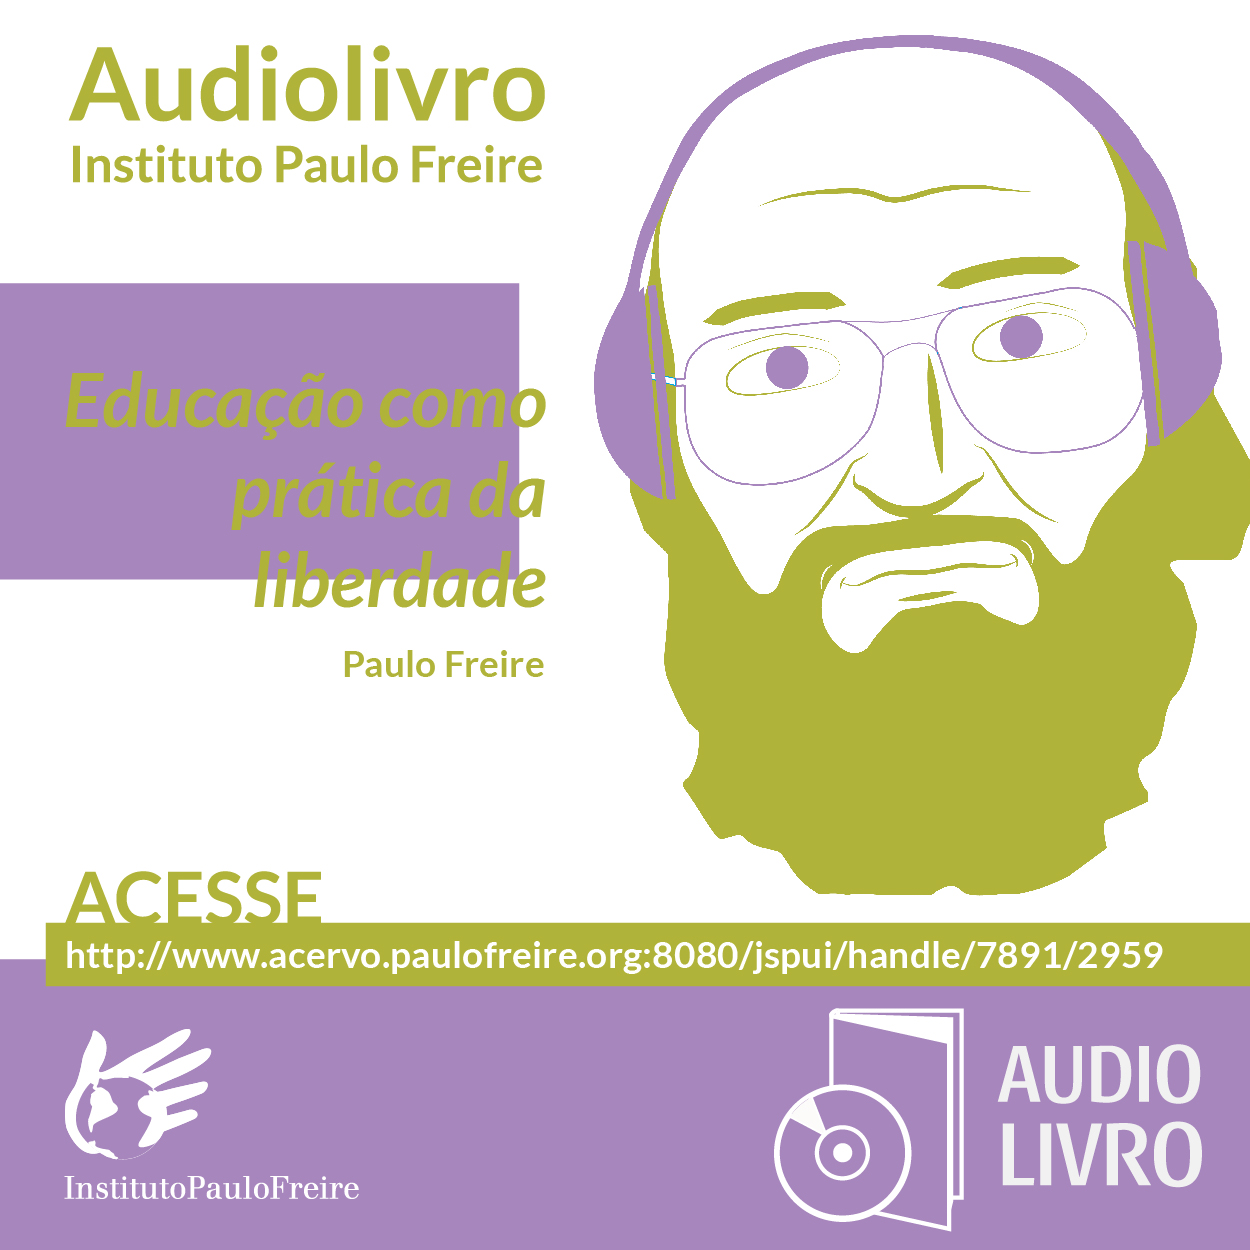 Educacao como AUDIOLIVRO face